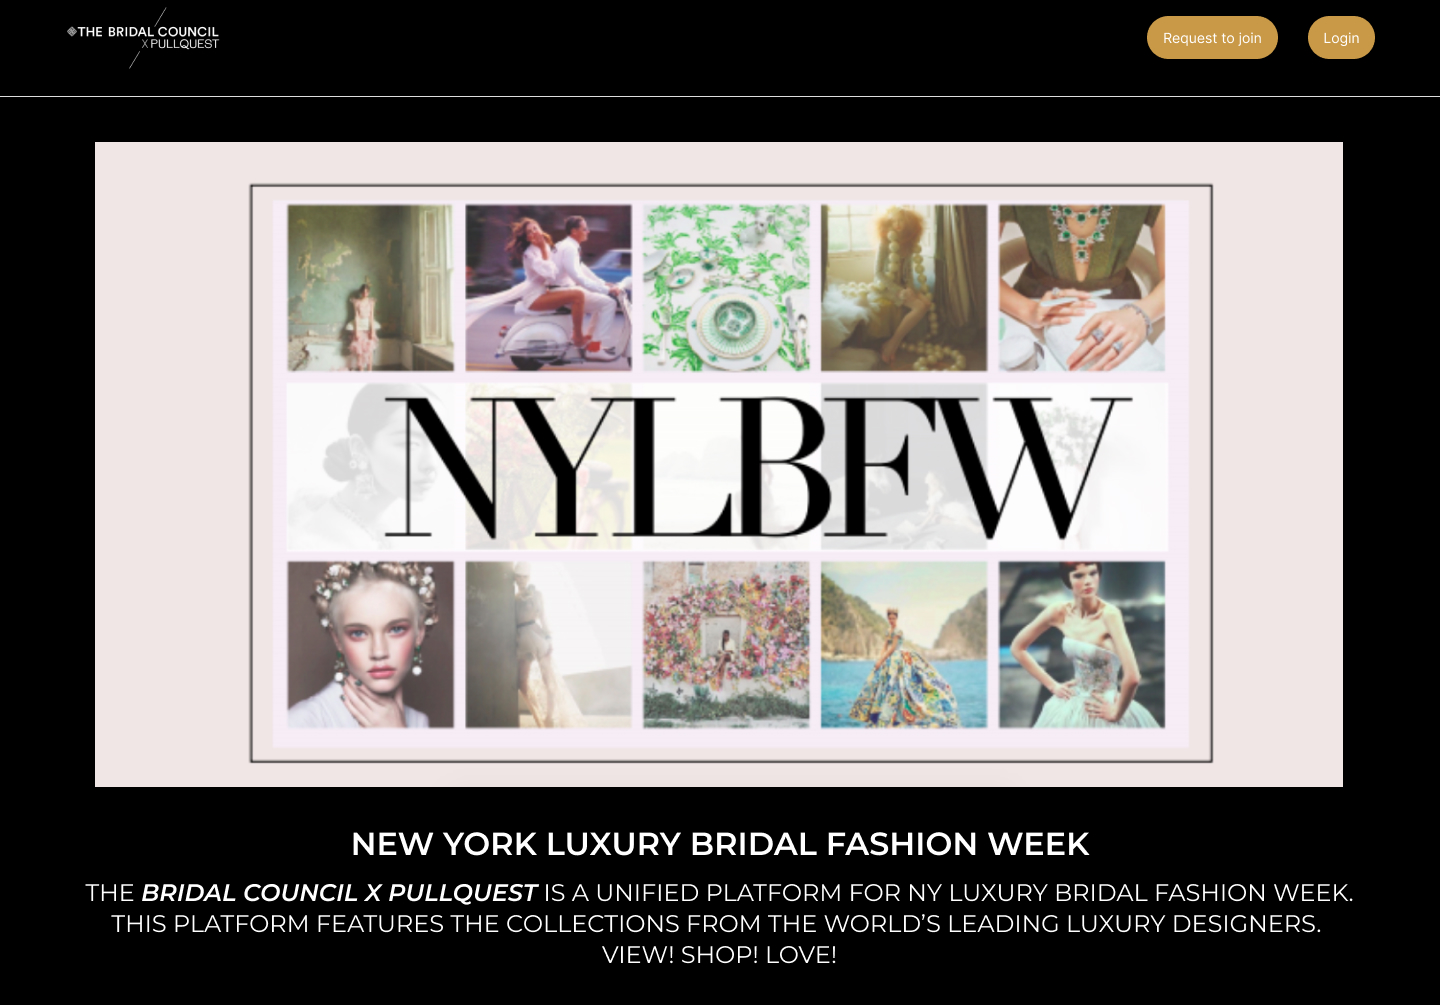 An image from The Bridal Council x Pullquest's platform.